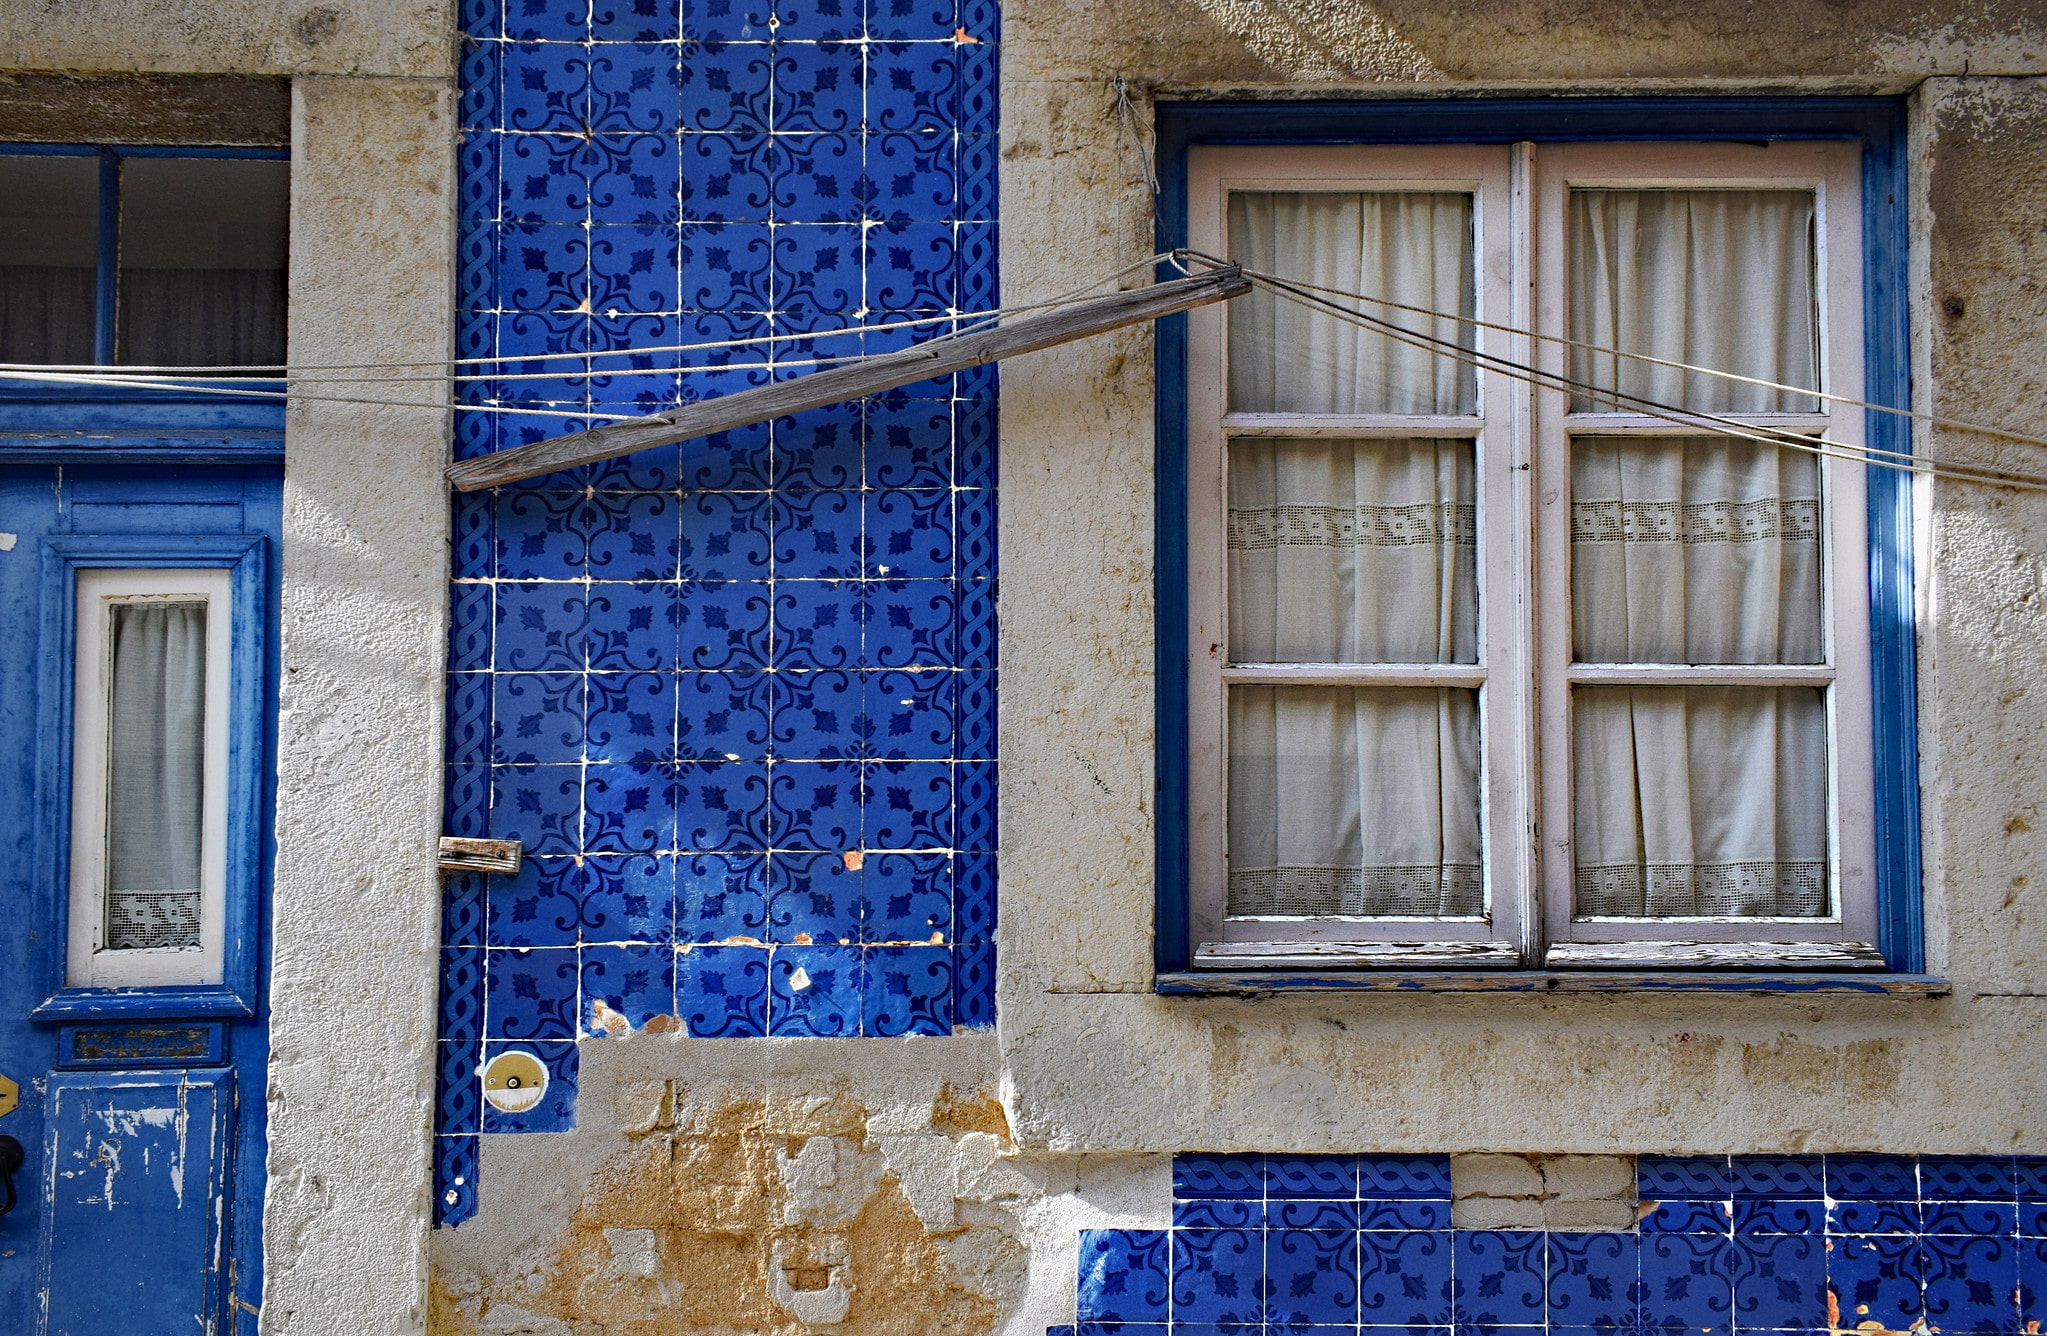 Searching for the country's painted tiles is a beautiful thing to do in Portugal